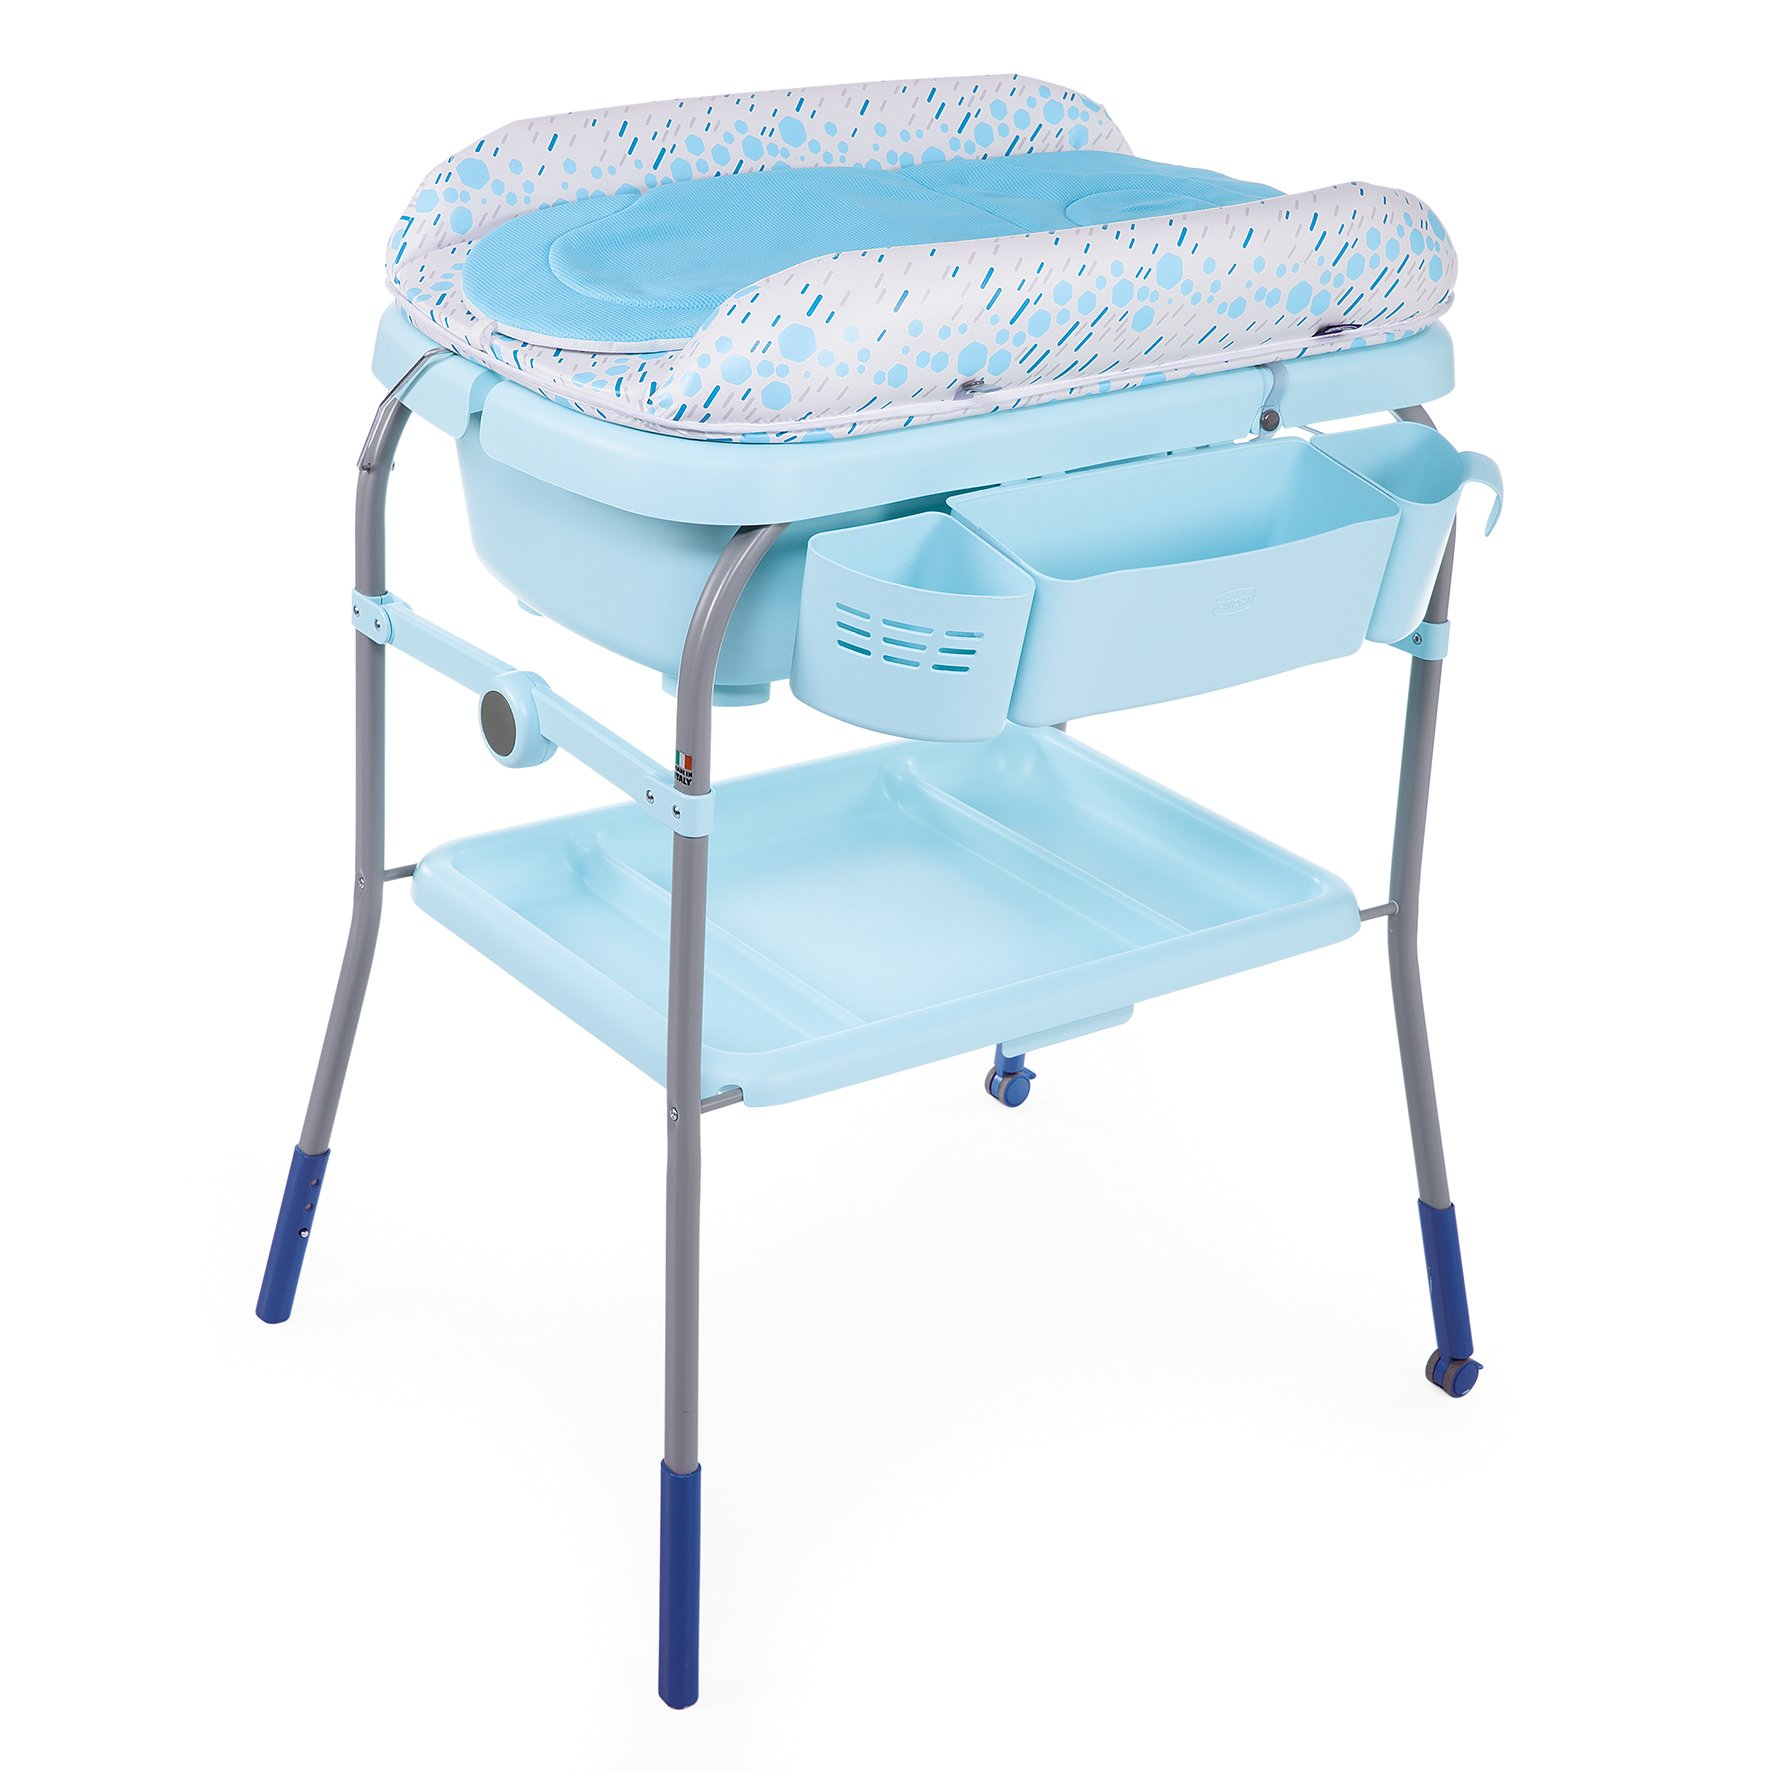 Foldable Infant Baby Home Bathroom Bath Comfort Diaper Storage Changing Table US